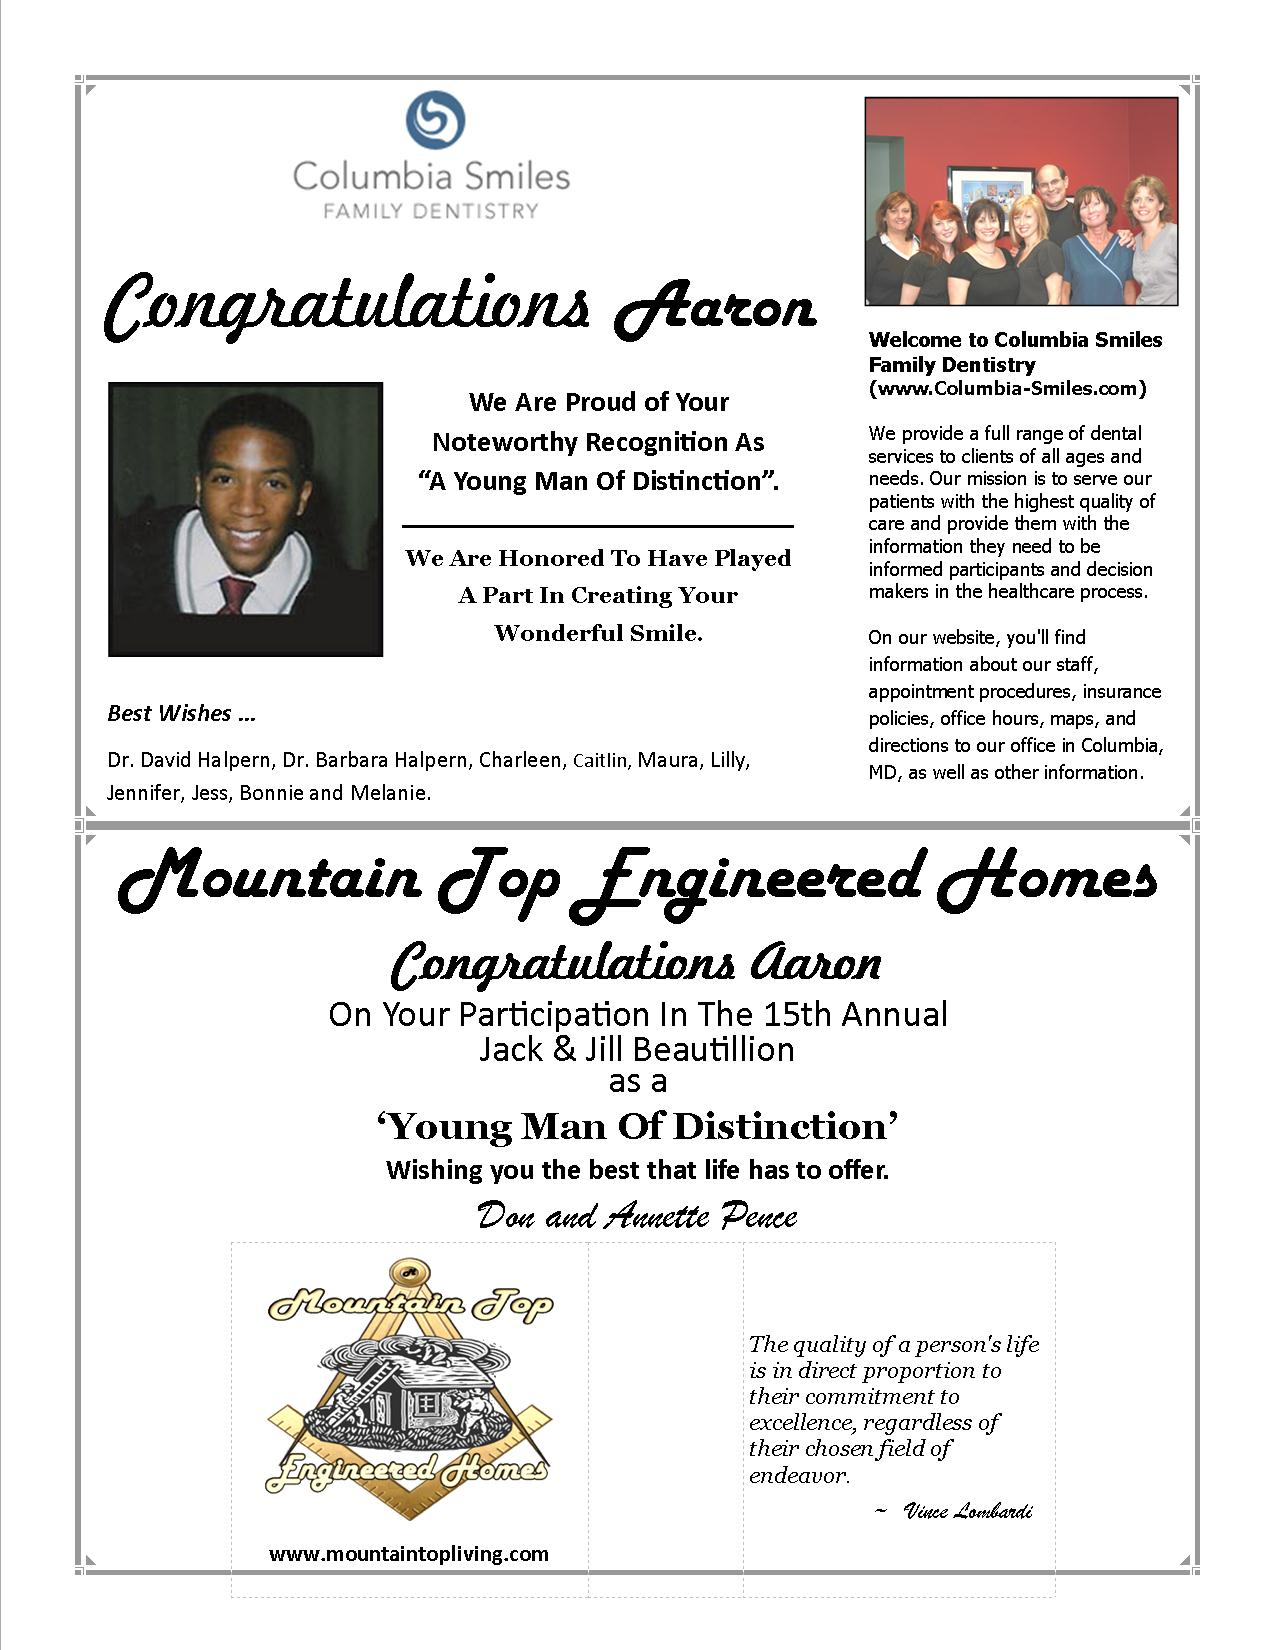 Aaron Young Man Of Distinction